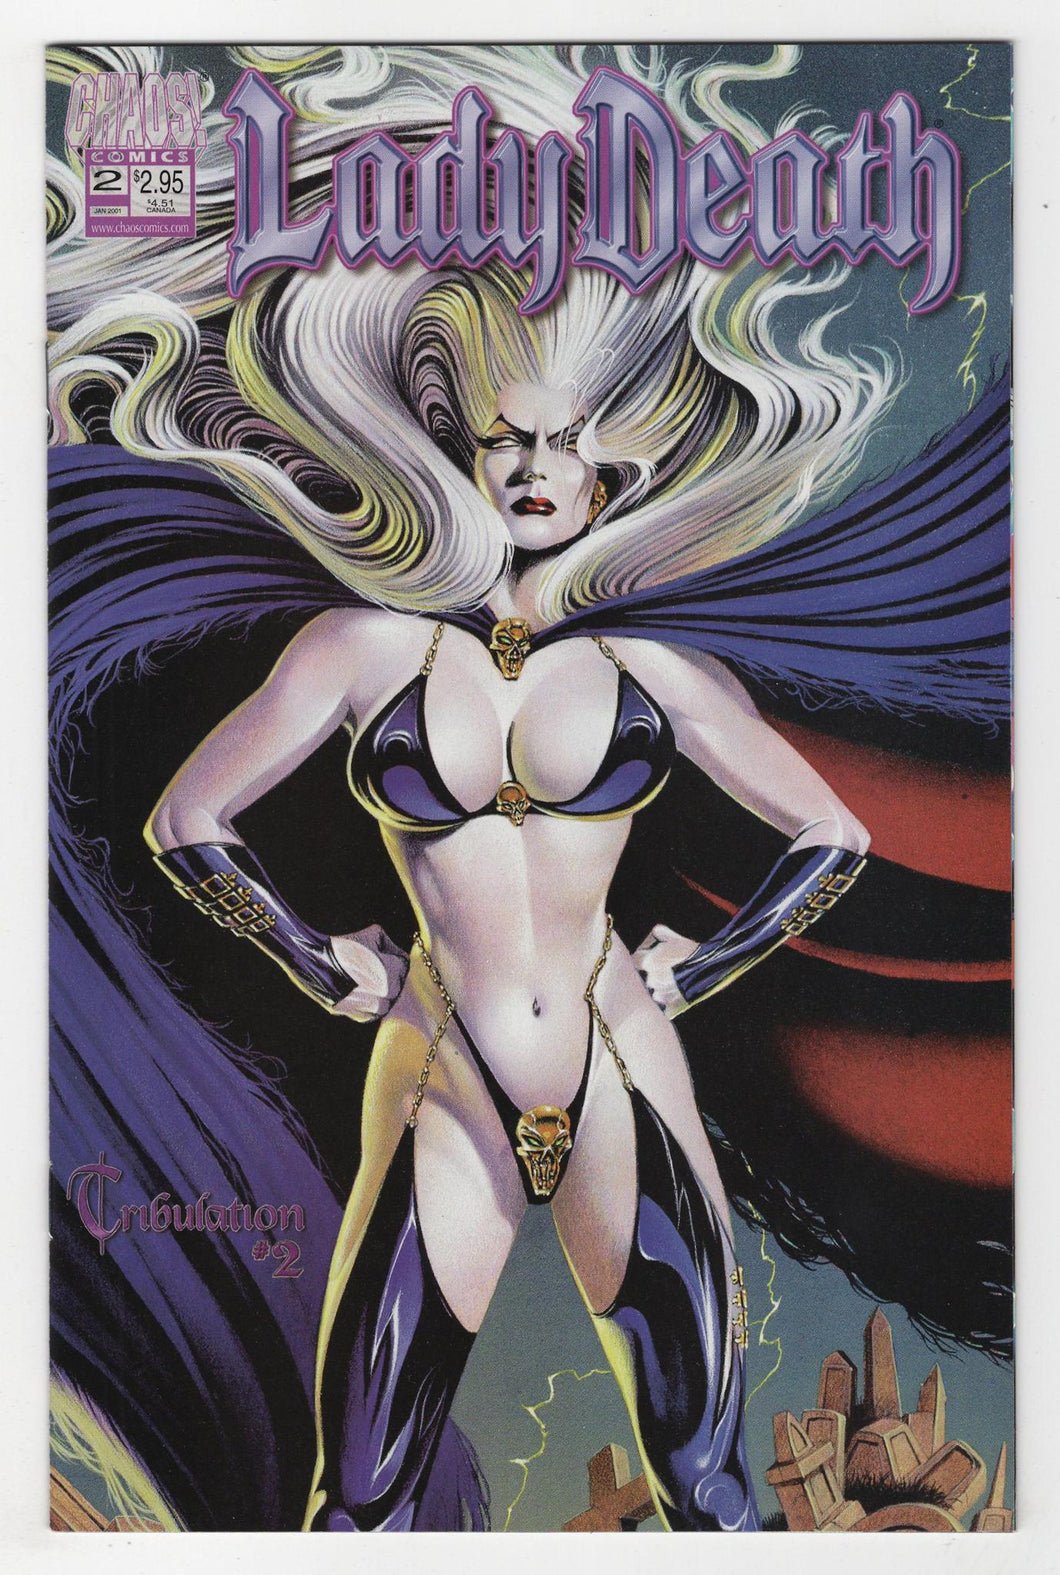 Lady Death Tribulation #2 Cover Front